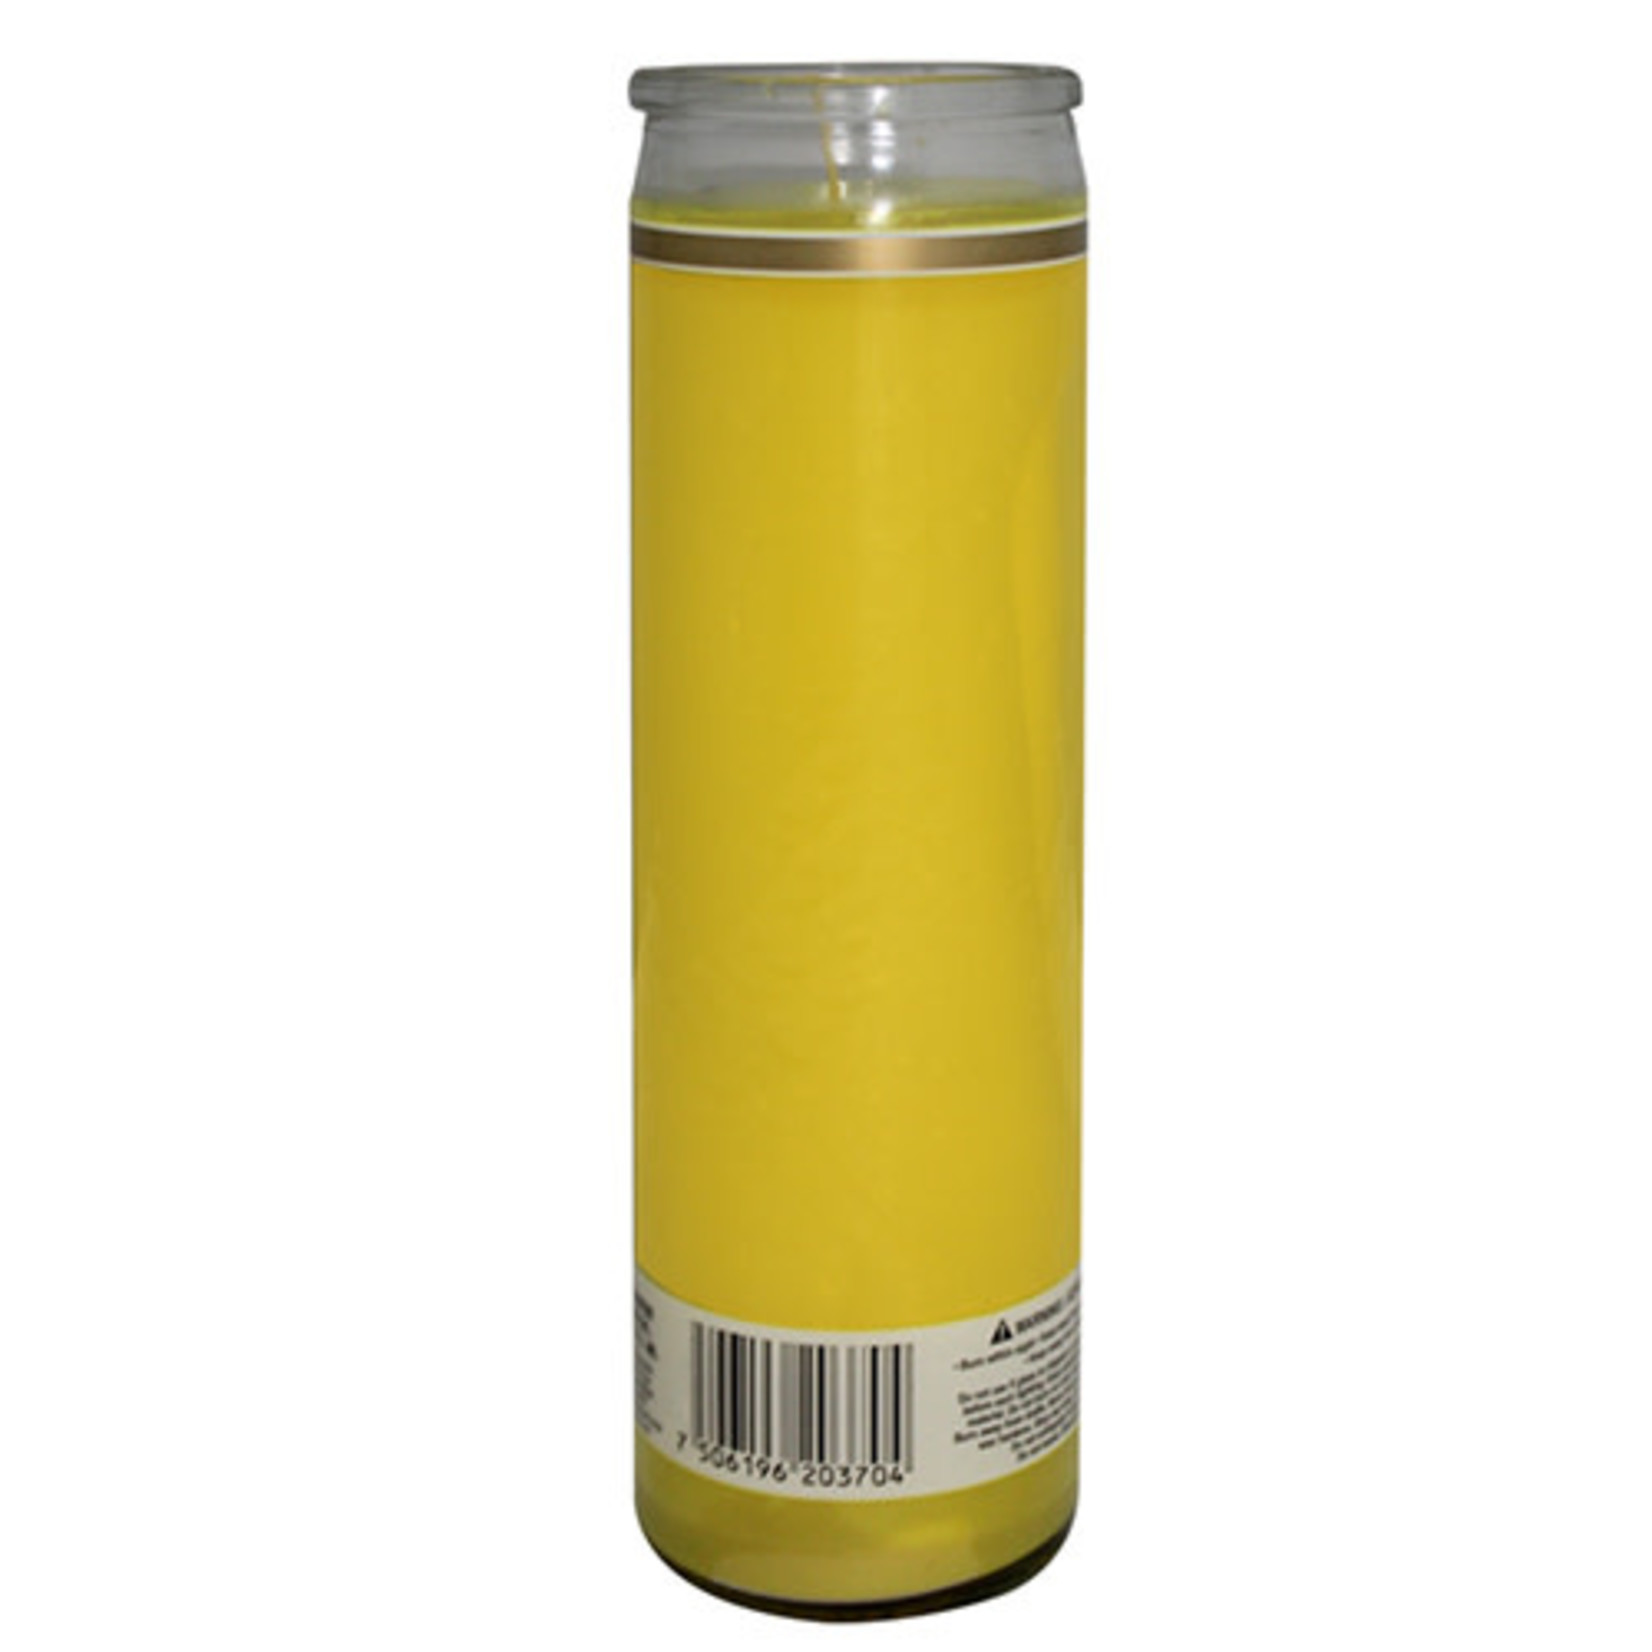 36 Hour Candle Plain Yellow